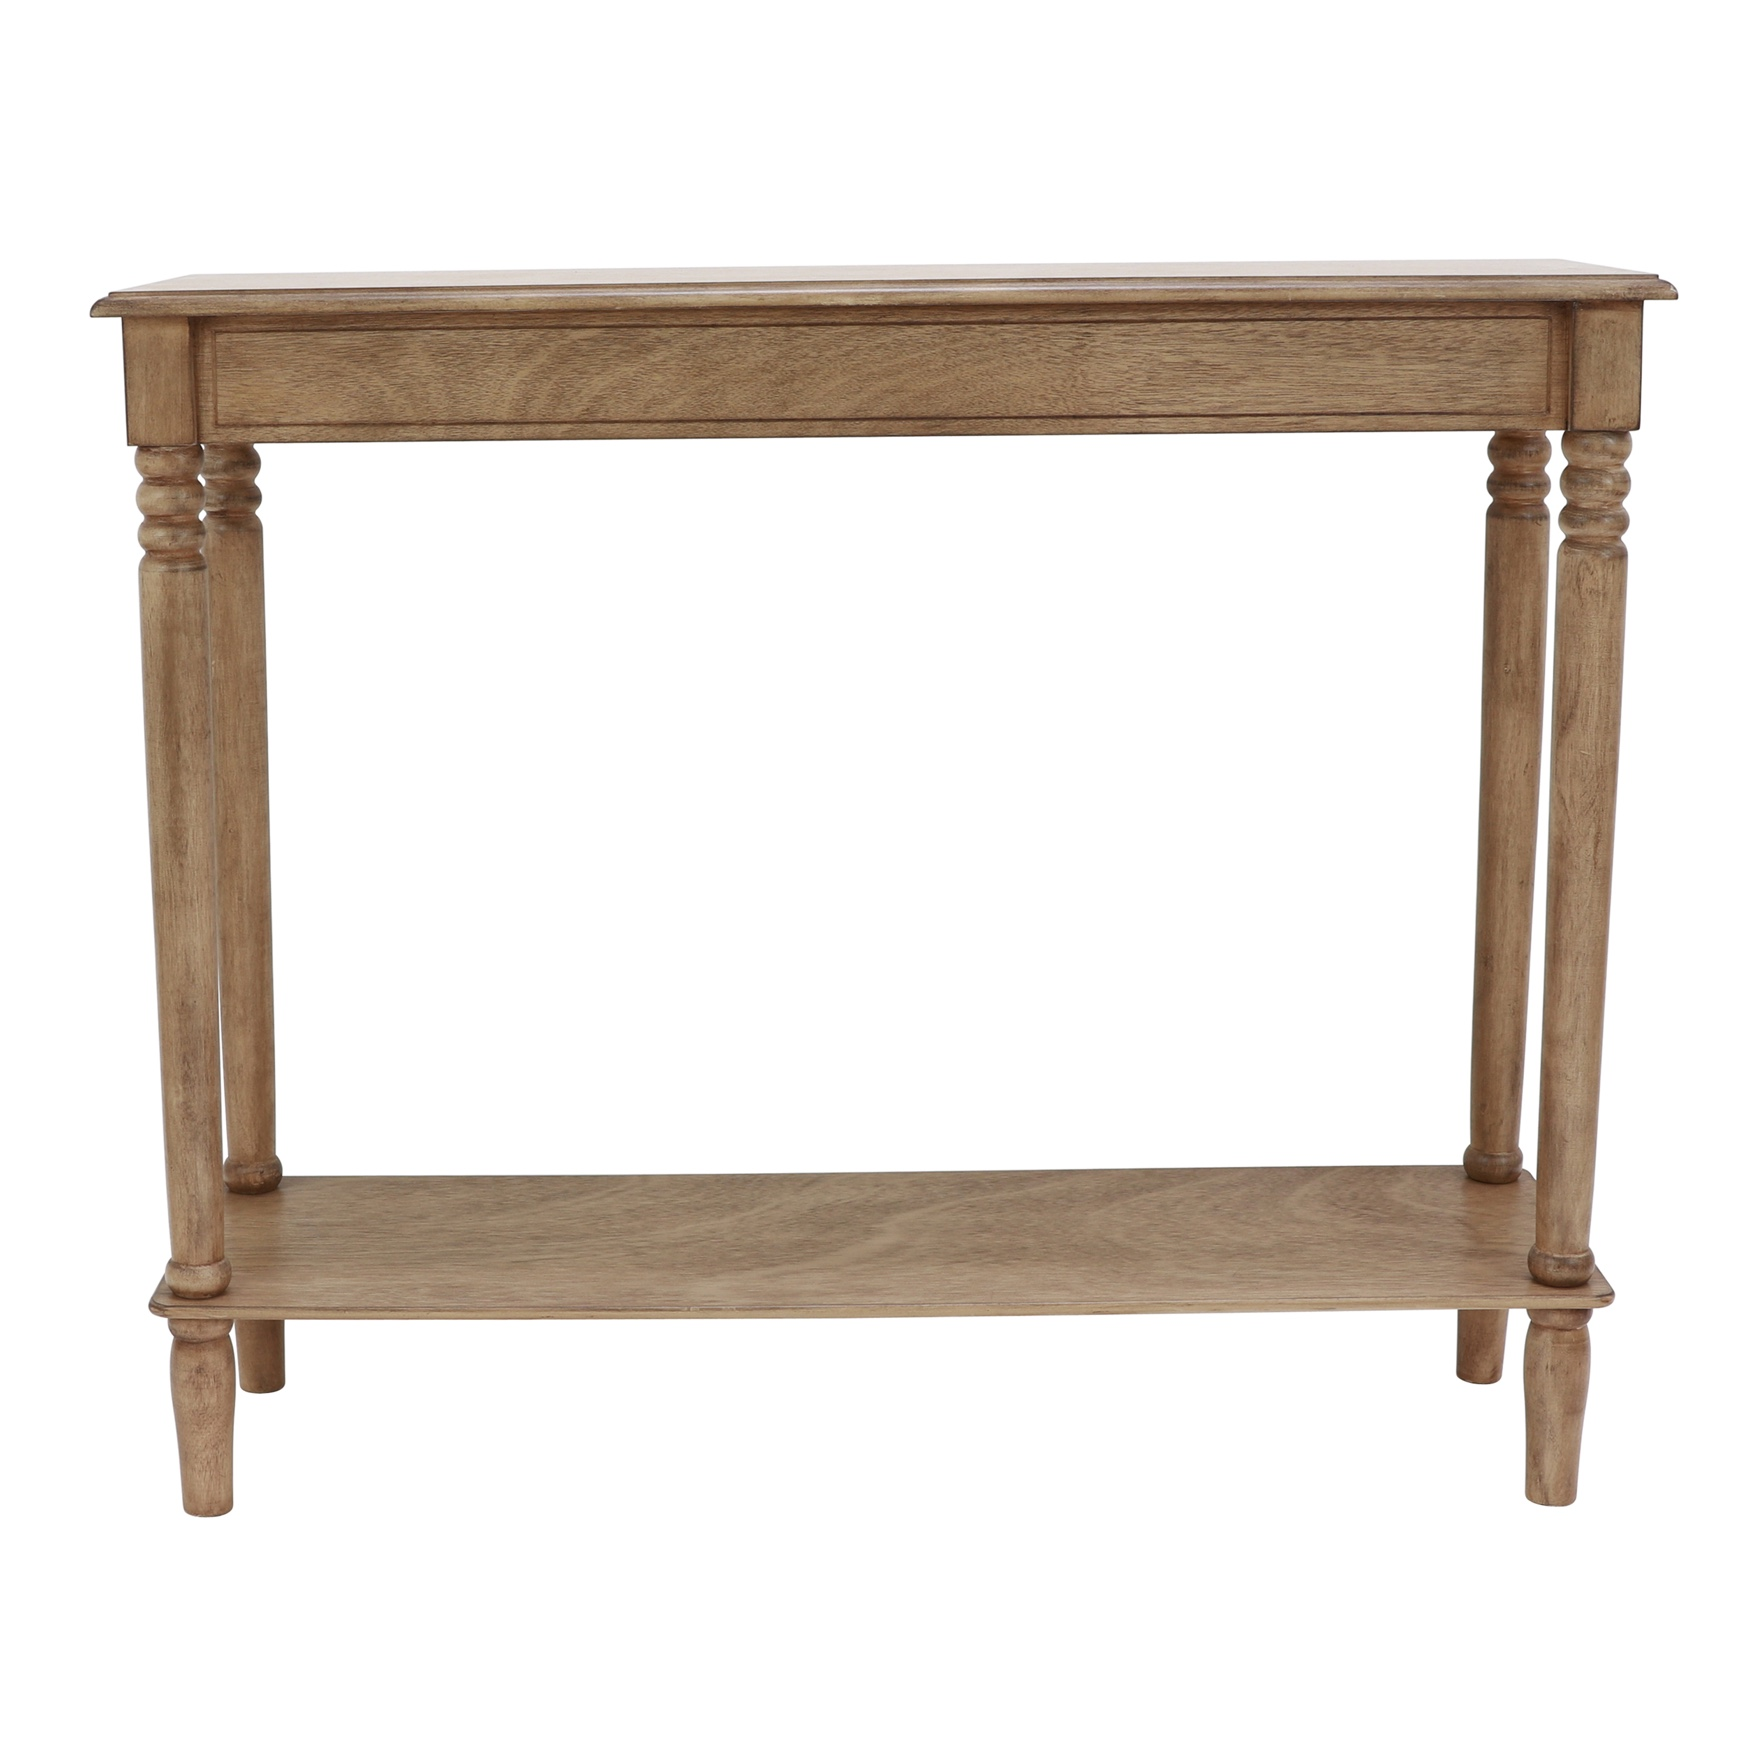 Sahara Console Table by J. Hunt, SAHARA